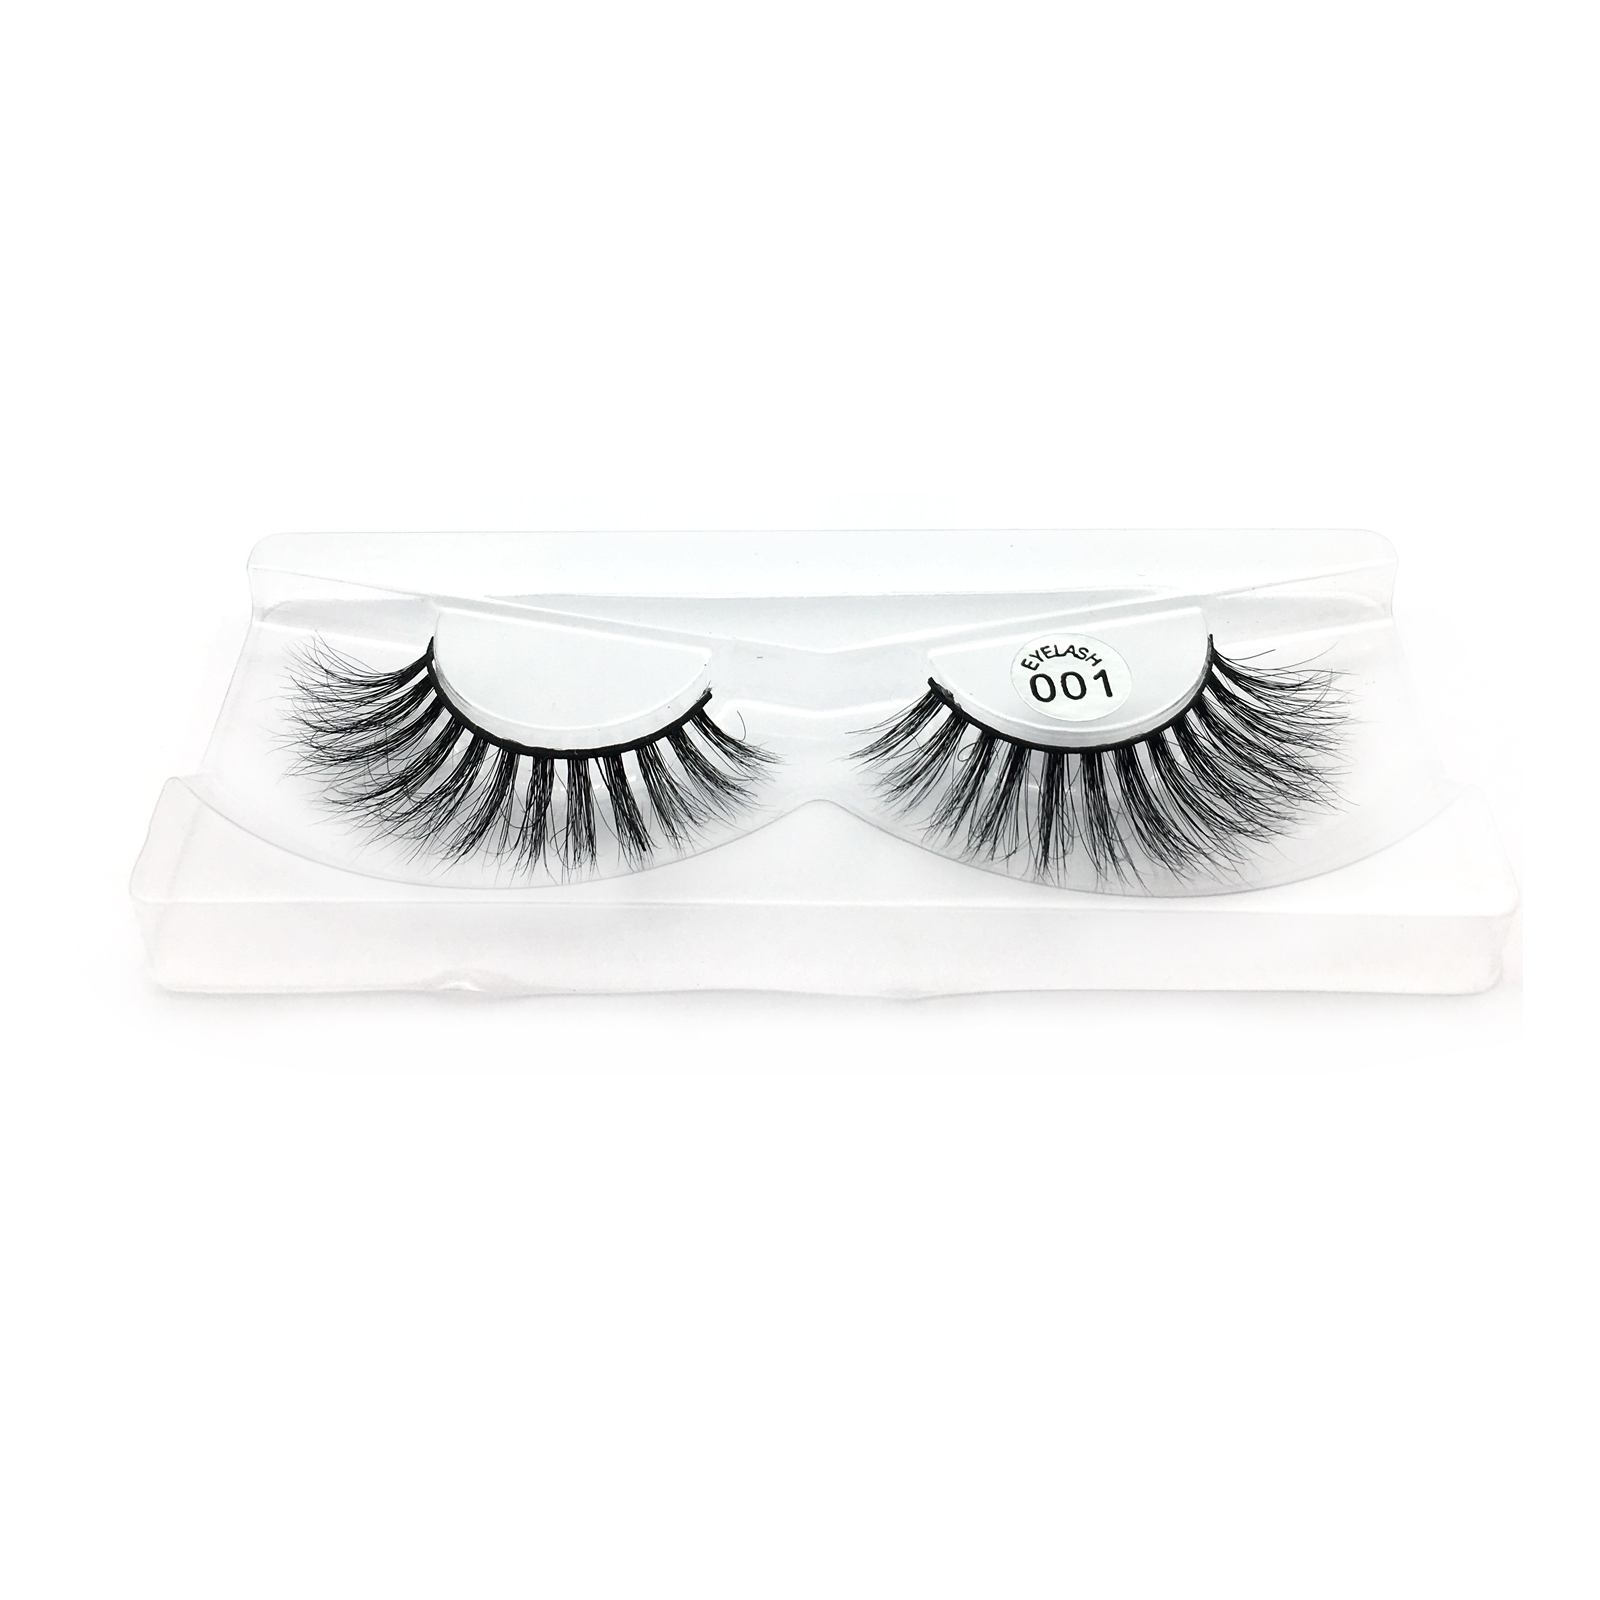 3D Mink Lashes Wholesale Vendors Supply 100% Real Mink Fur Strip Eyelashes with Private Logo in the US YY84